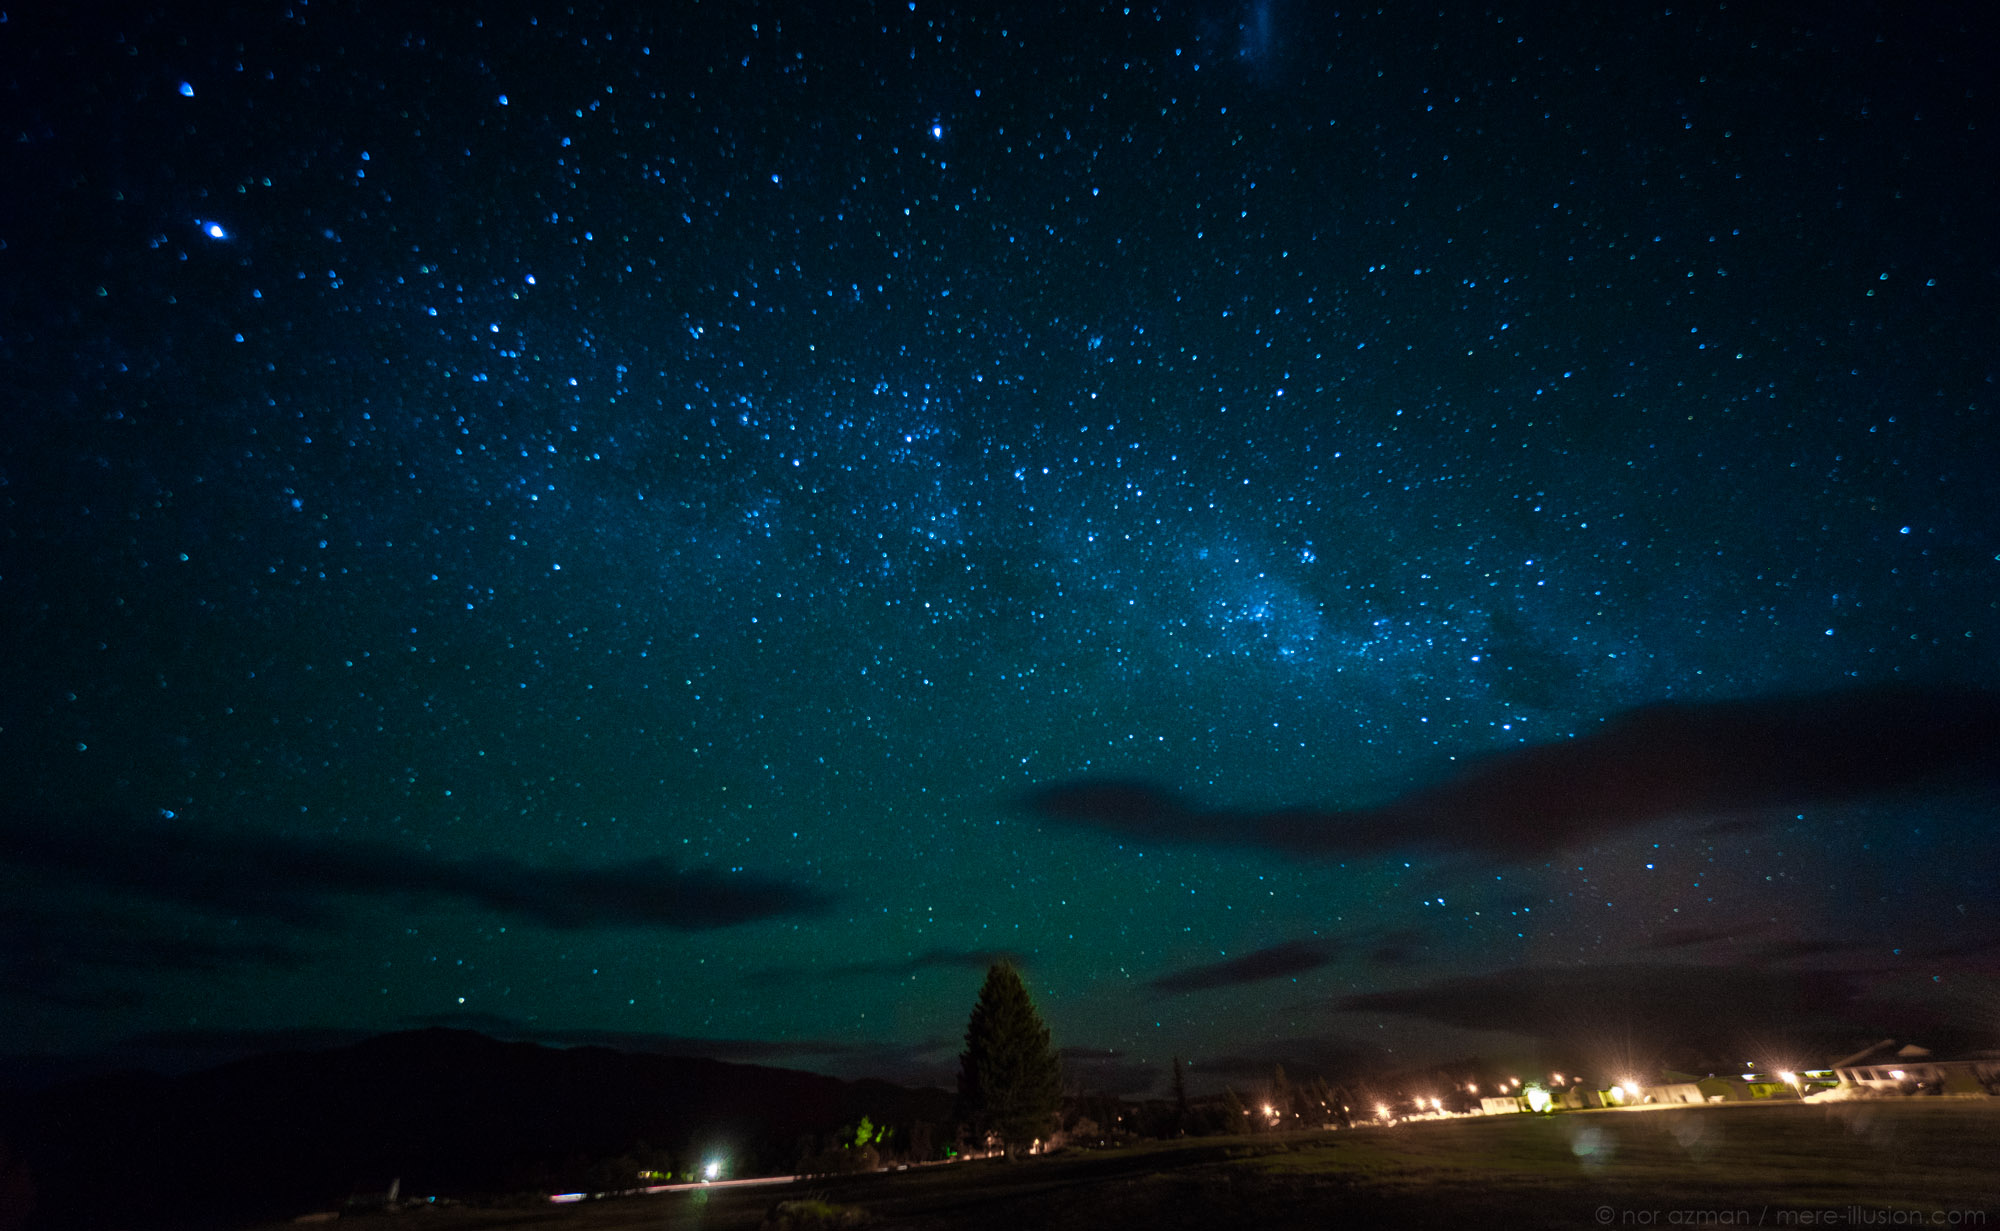 stardusts astrophotography in new zealand by nor azman